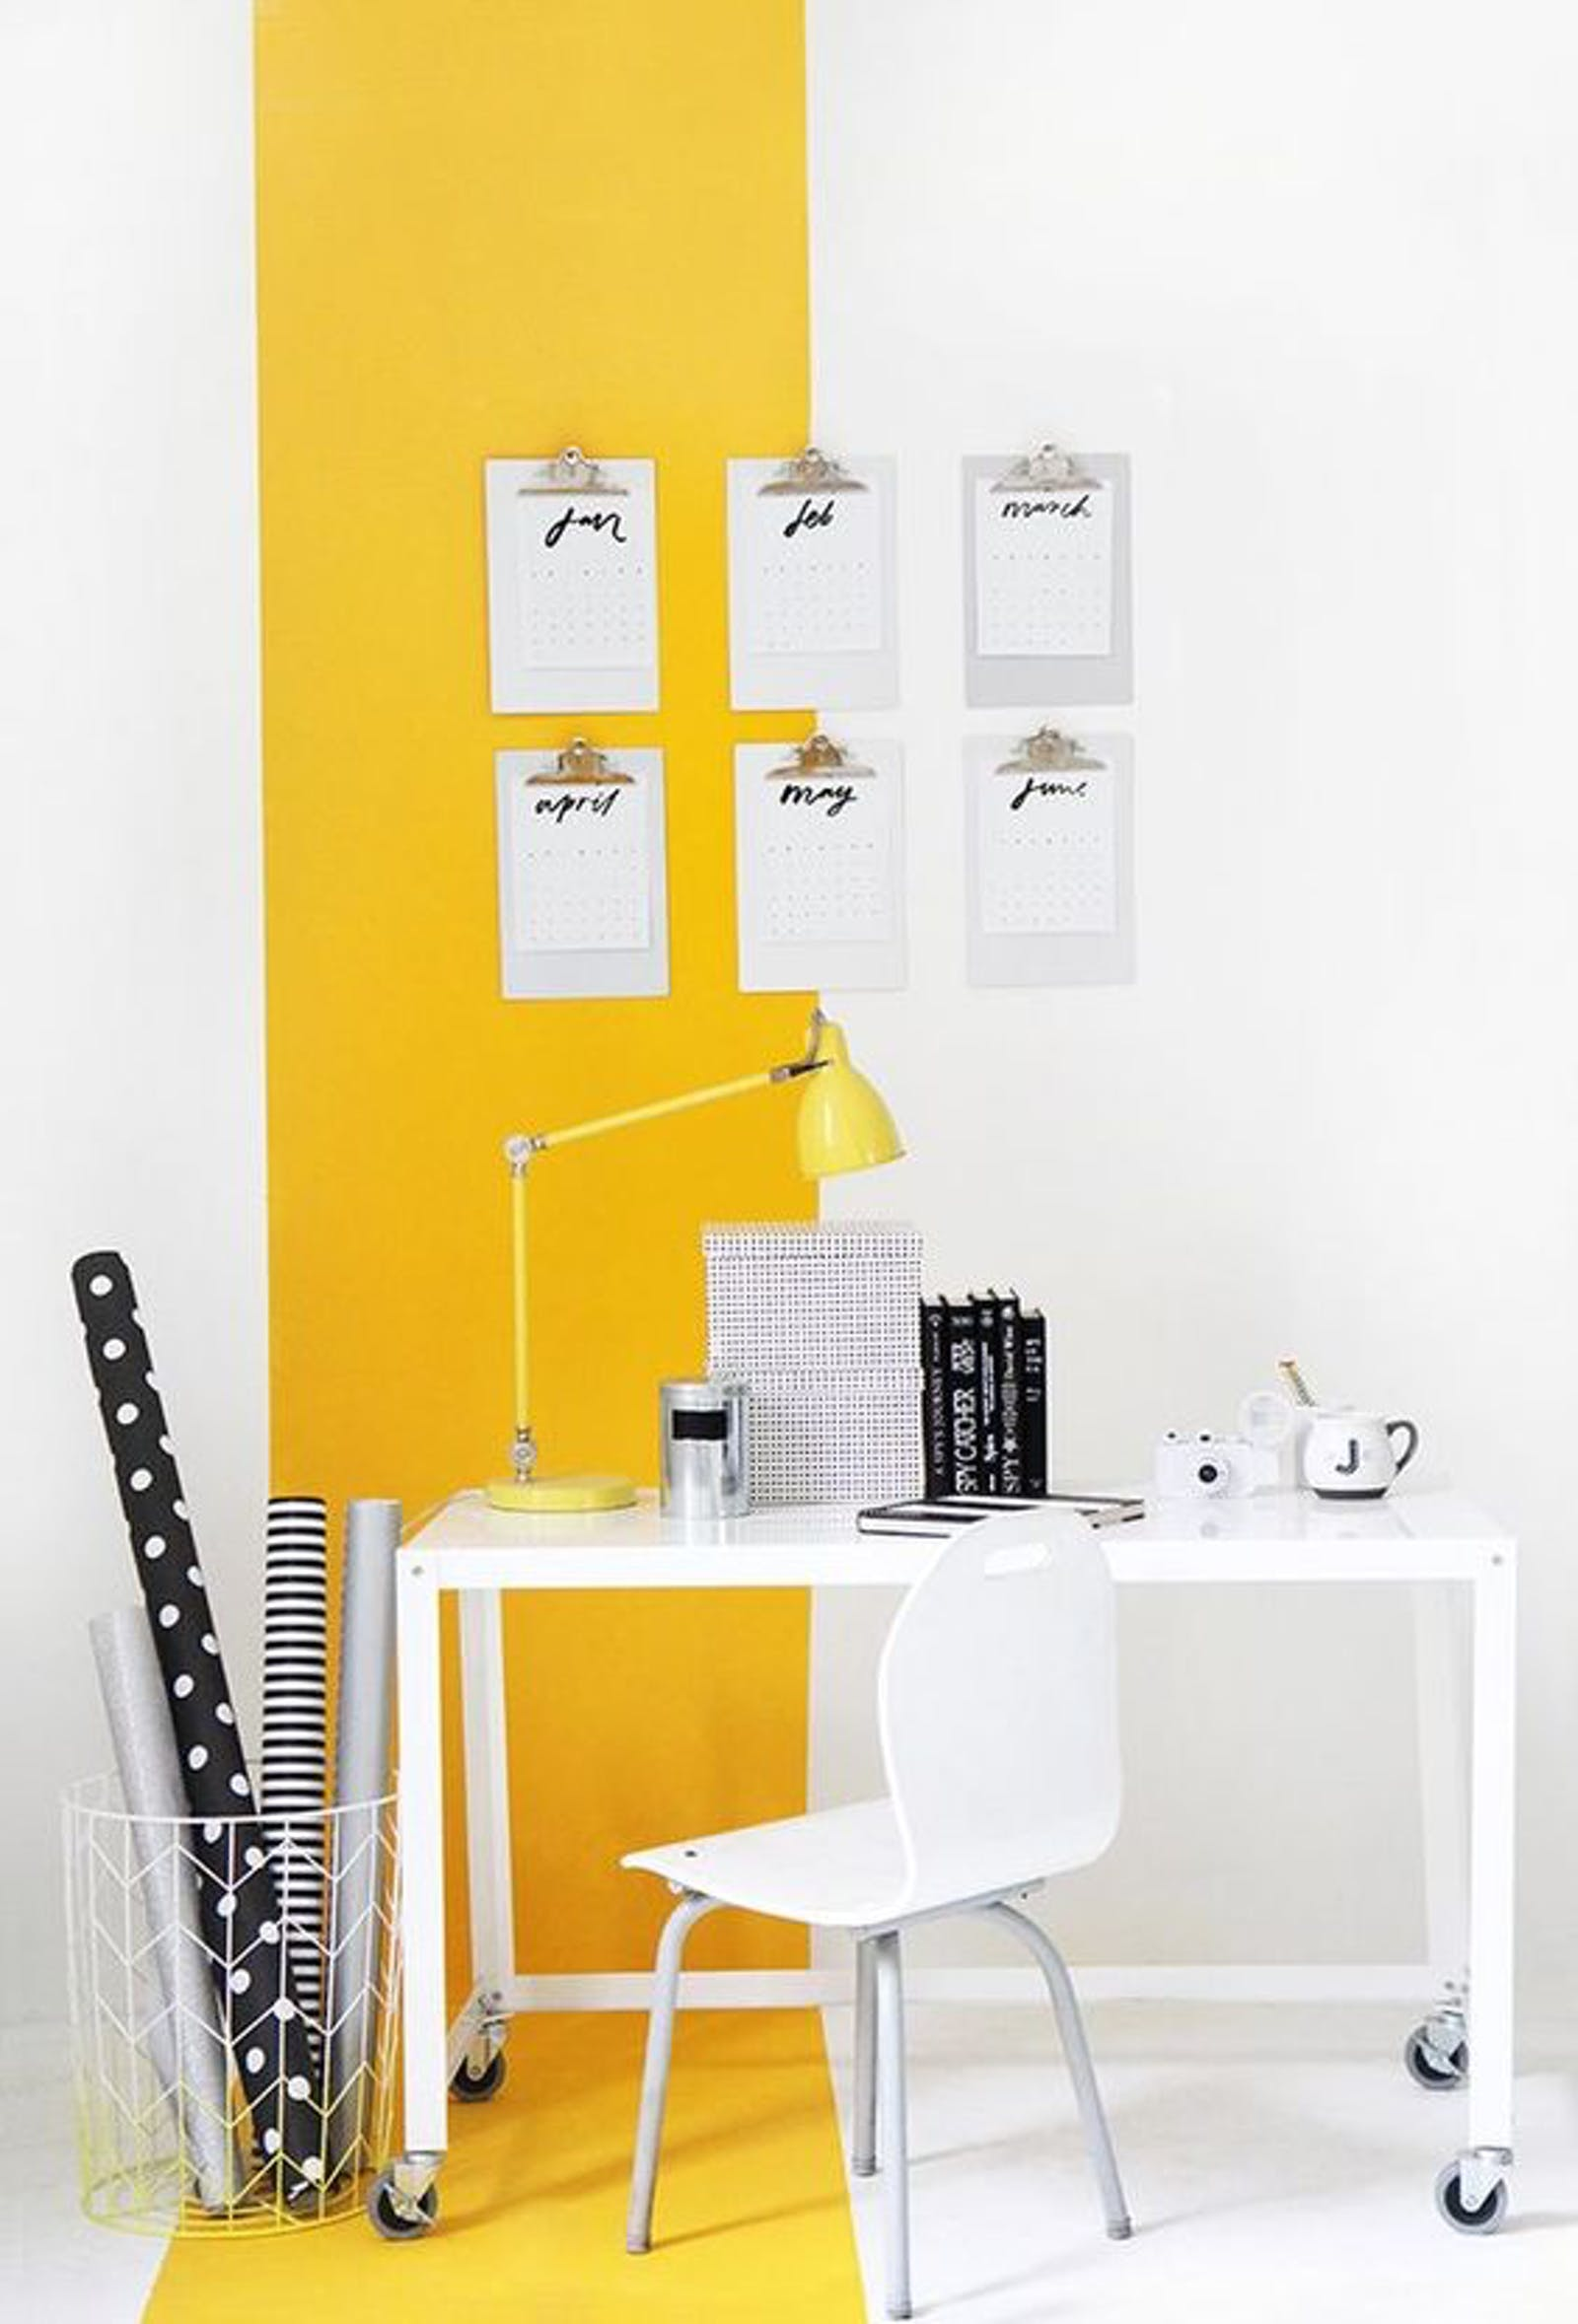 Home office area painted in yellow and white